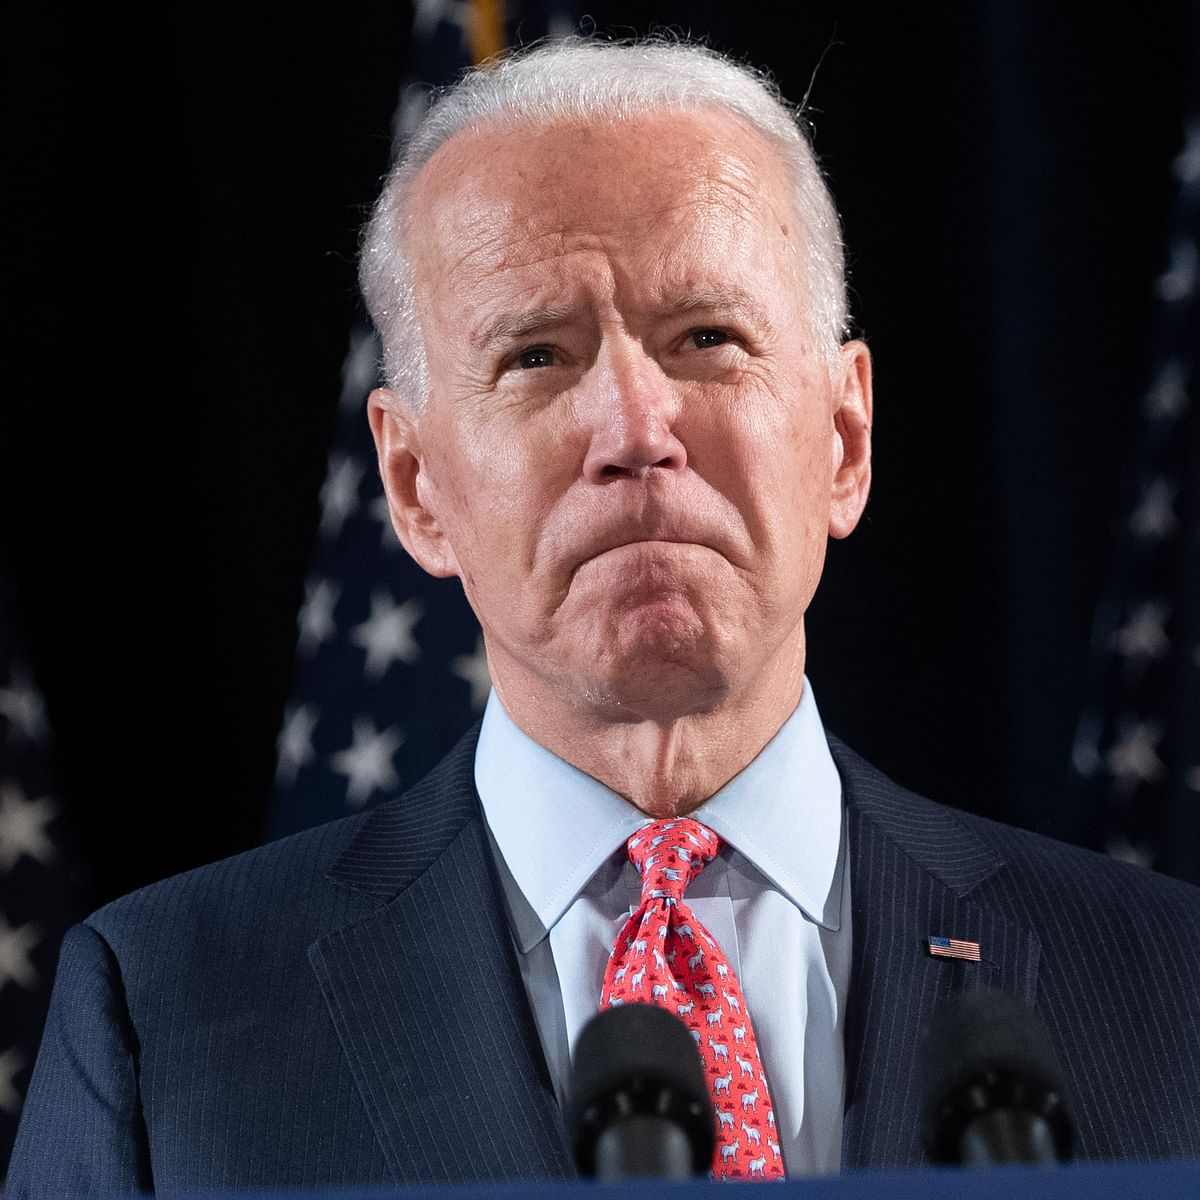 Joe Biden accepts Democratic Party's presidential nomination, vows to end 'season of darkness'